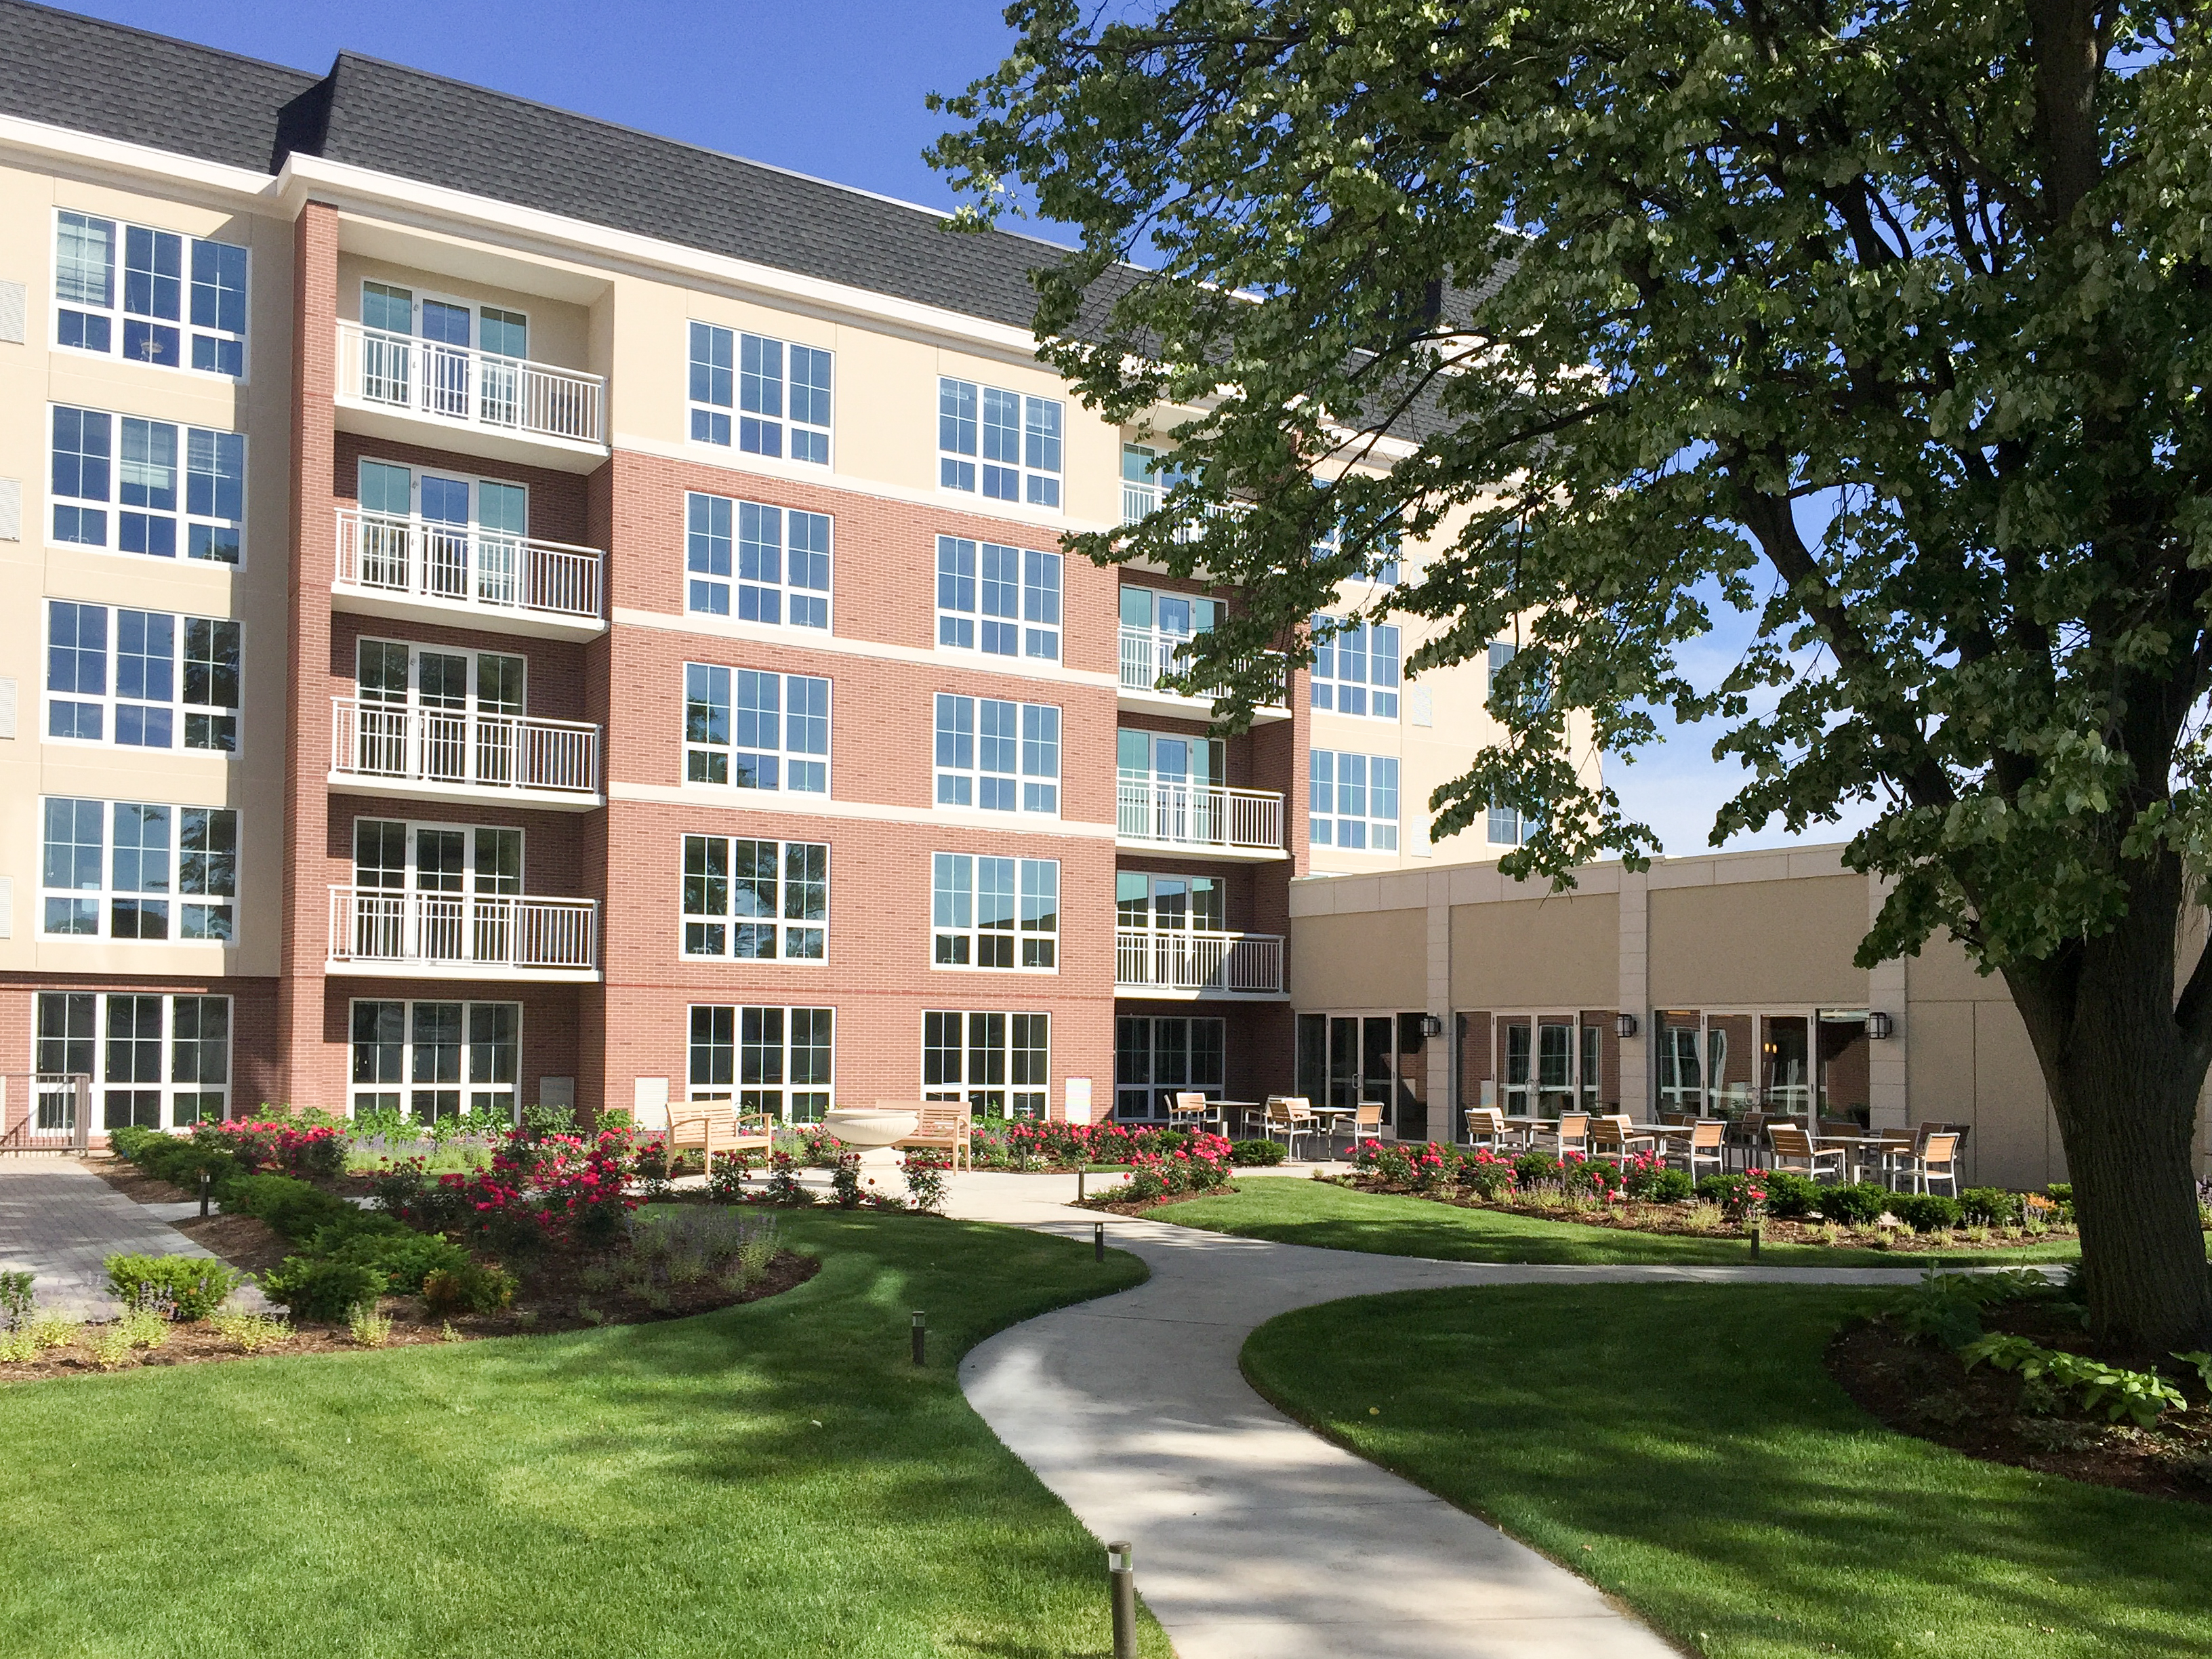 The Senior Housing Sweet Spot